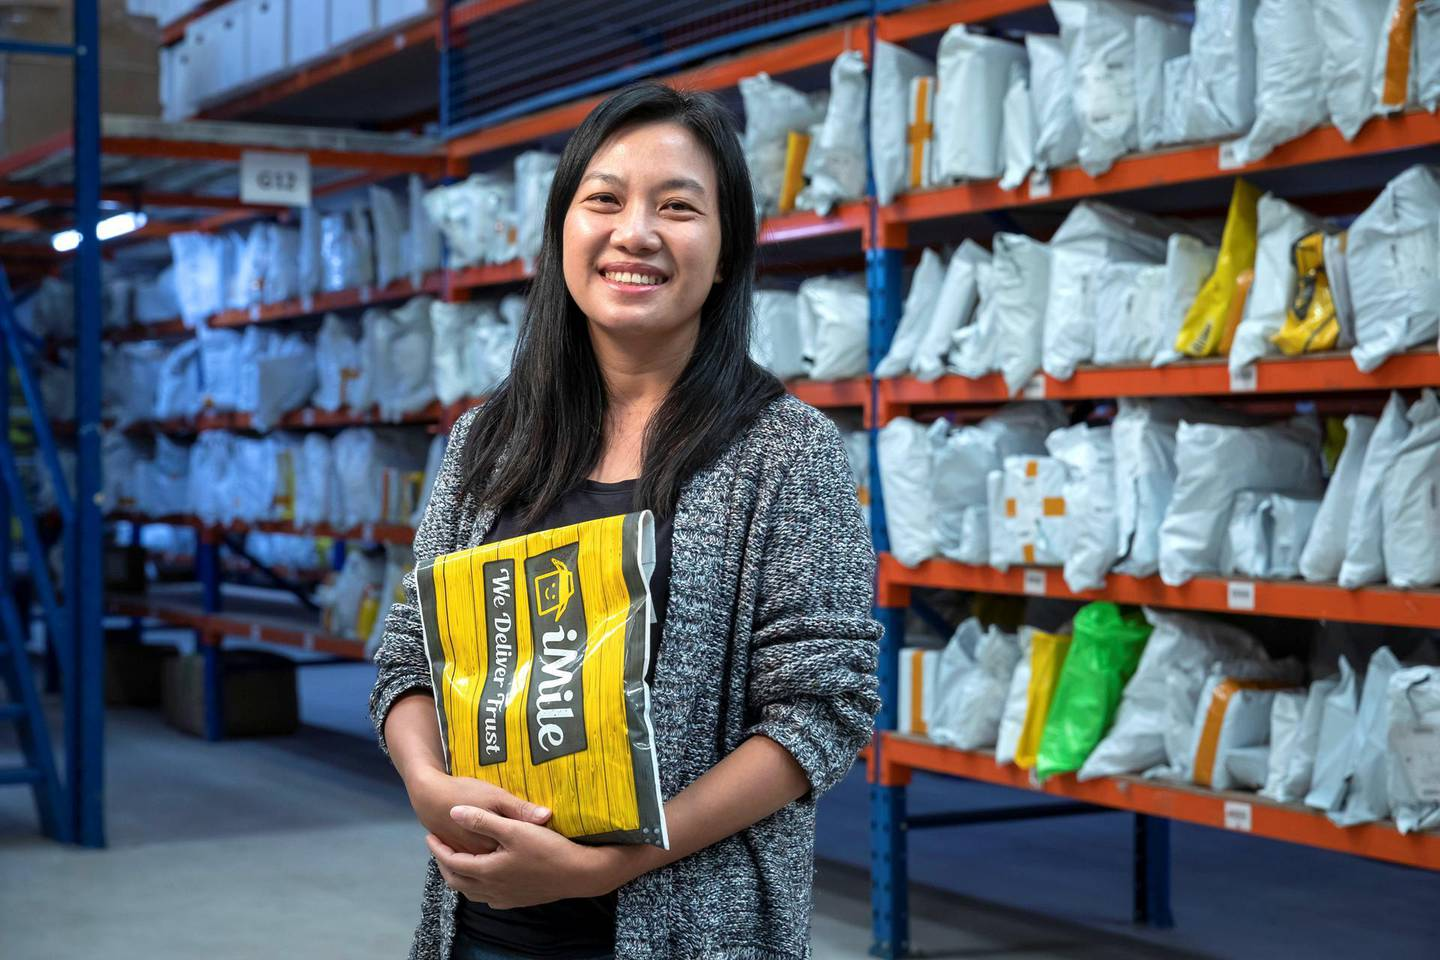 DUBAI, UNITED ARAB EMIRATES. 29 MARCH 2021. Rita Huang is the founder of iMile, a solution to digitalise last mile delivery services in order to address key challenges in the logistics industry. (Photo: Antonie Robertson/The National) Journalist: David Dunn. Section: Business.